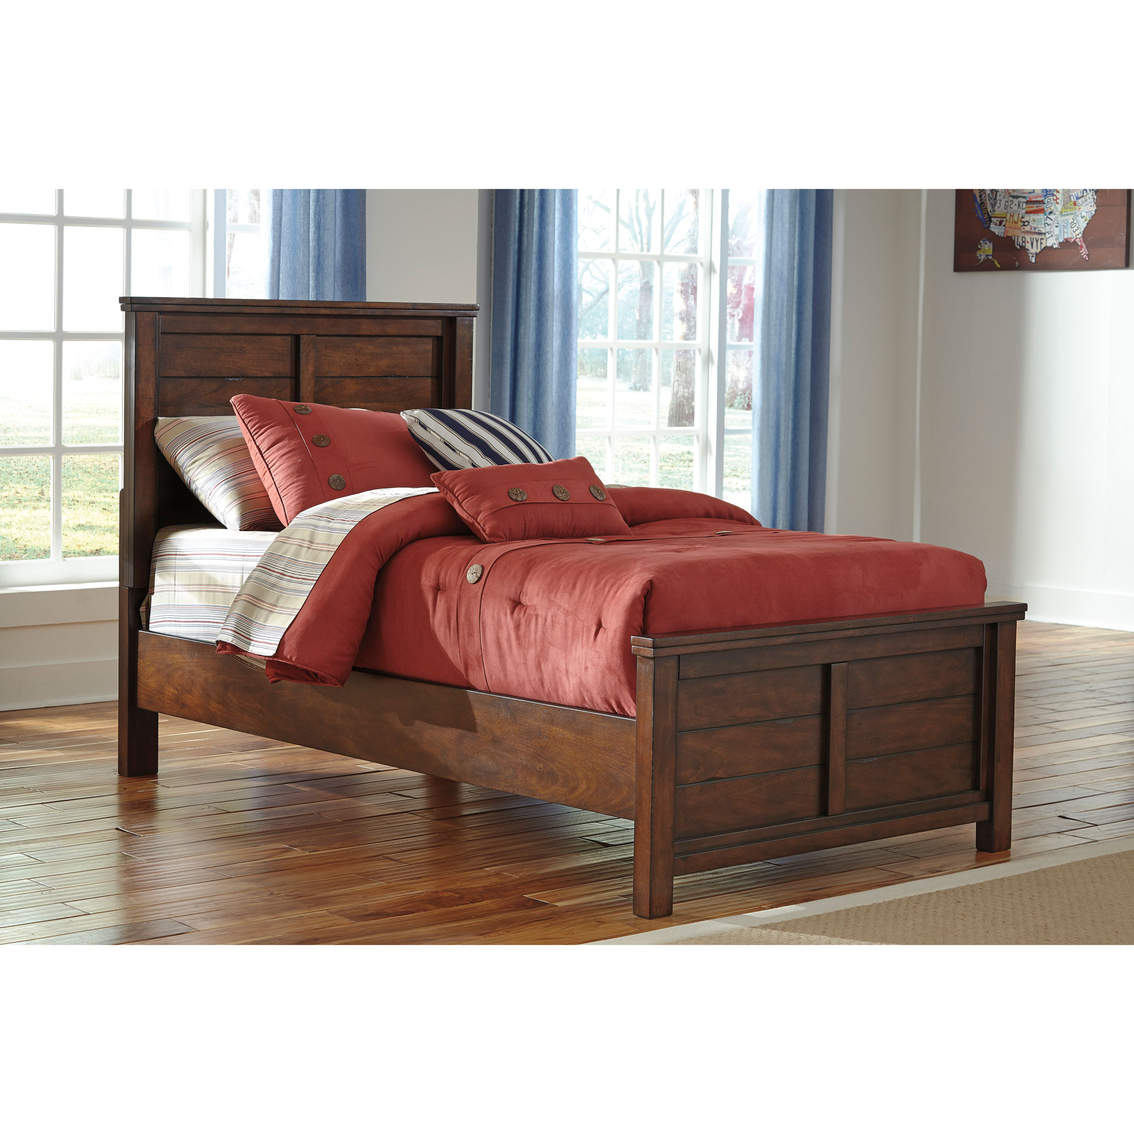 Ashley Ladiville Twin Panel Bed Beds Home Appliances Shop The Exchange